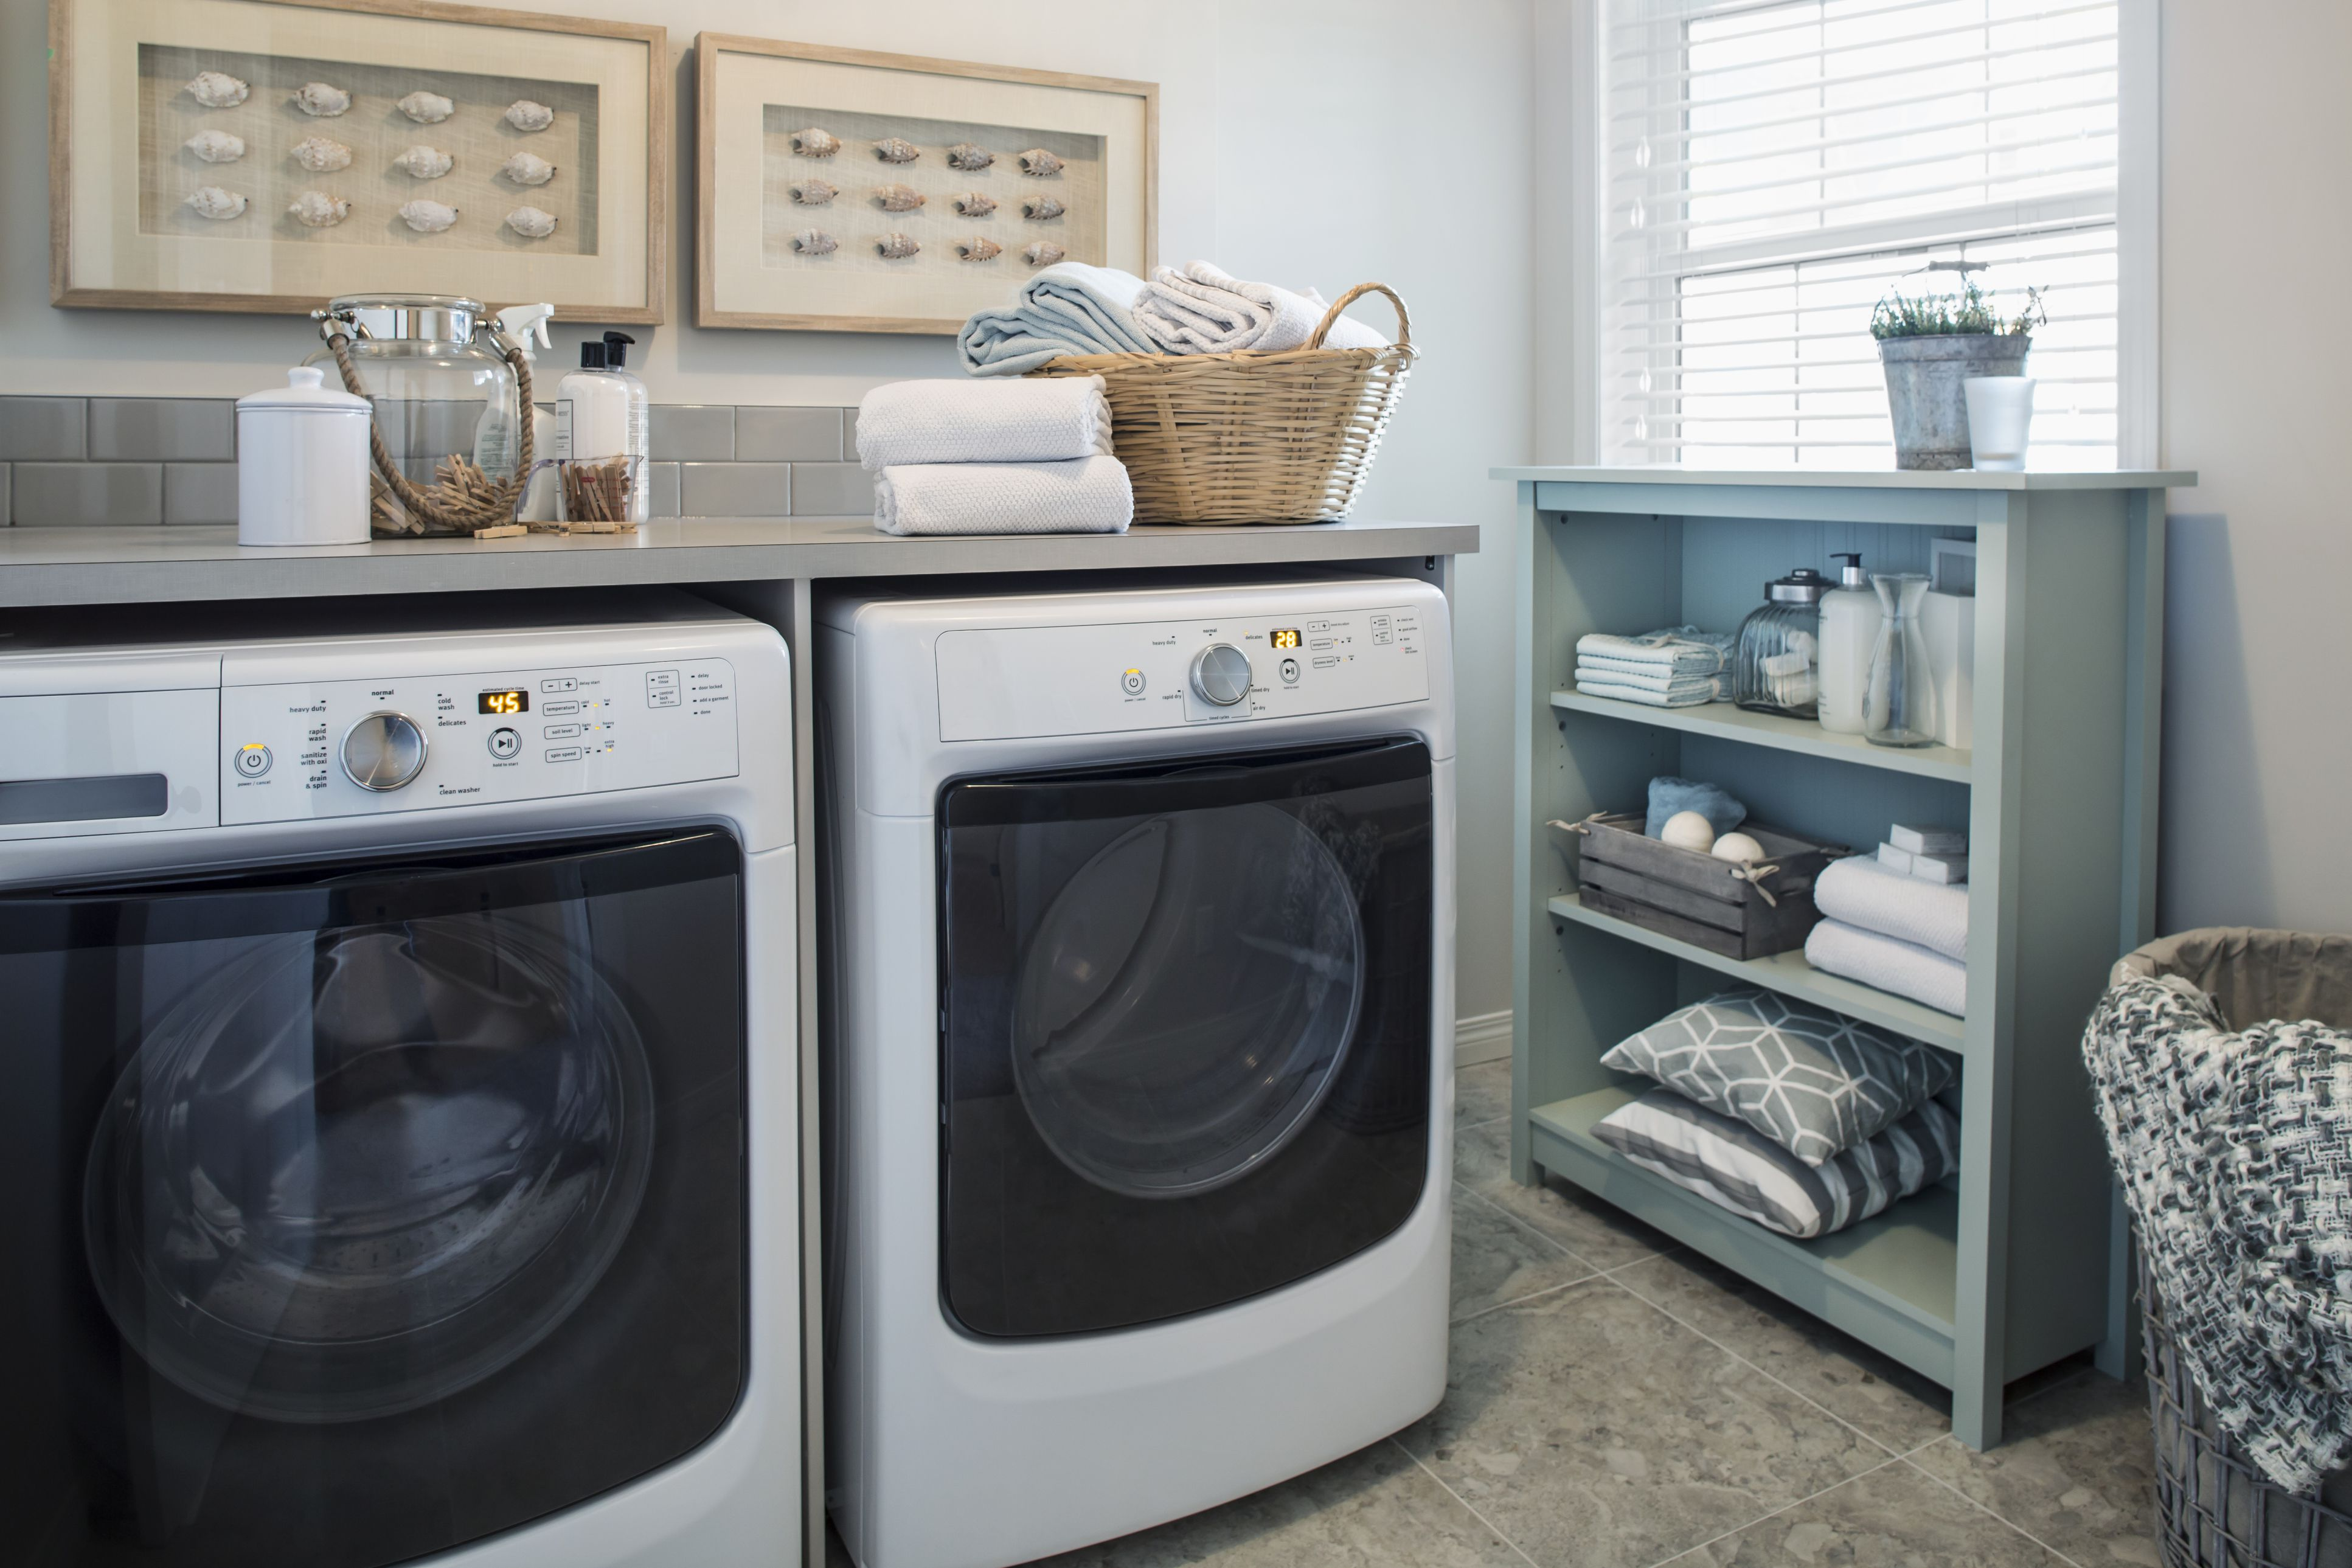 Washer and dryer with shelving in a laundry room.